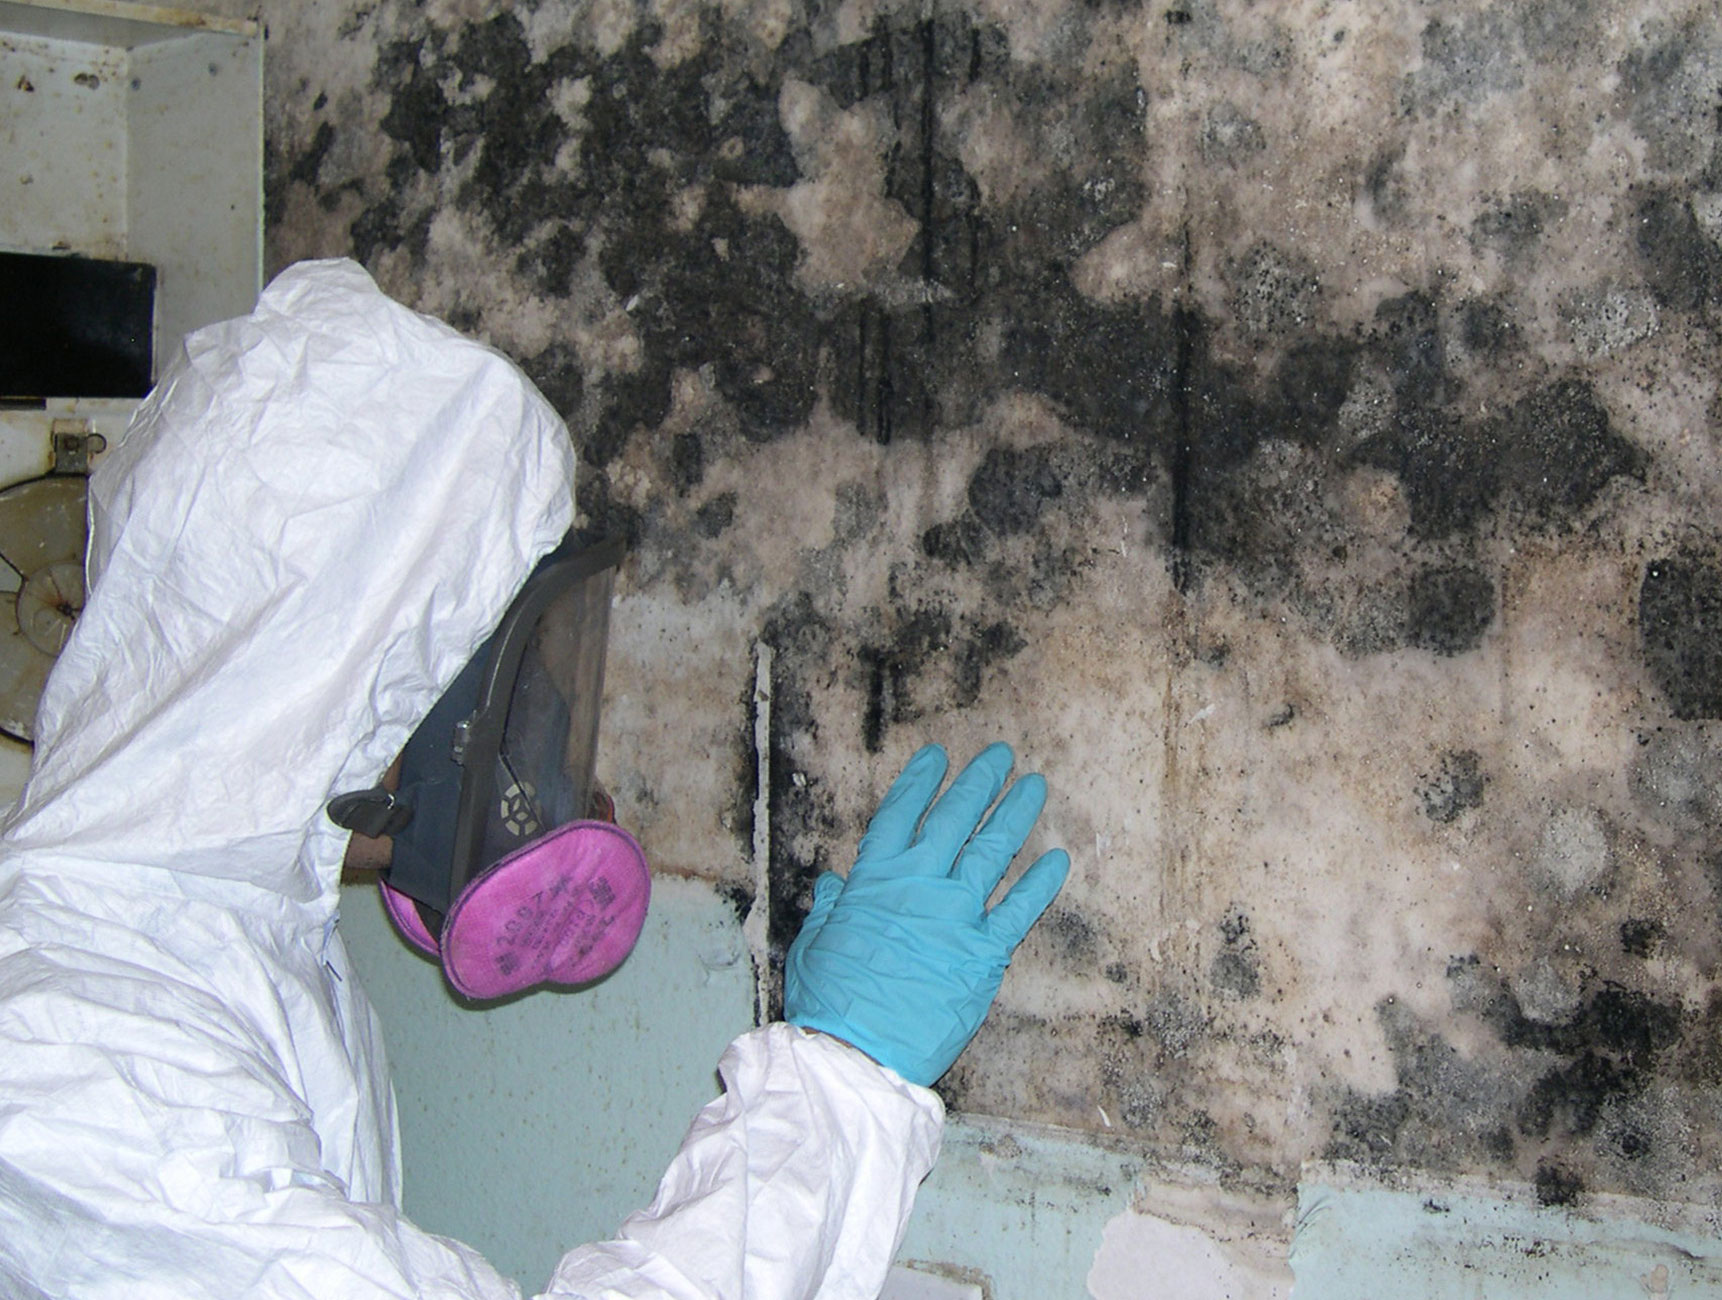 Contact Our Professional Certified Mold Specialists About Inspection And Removal Service Call 813 965 5602